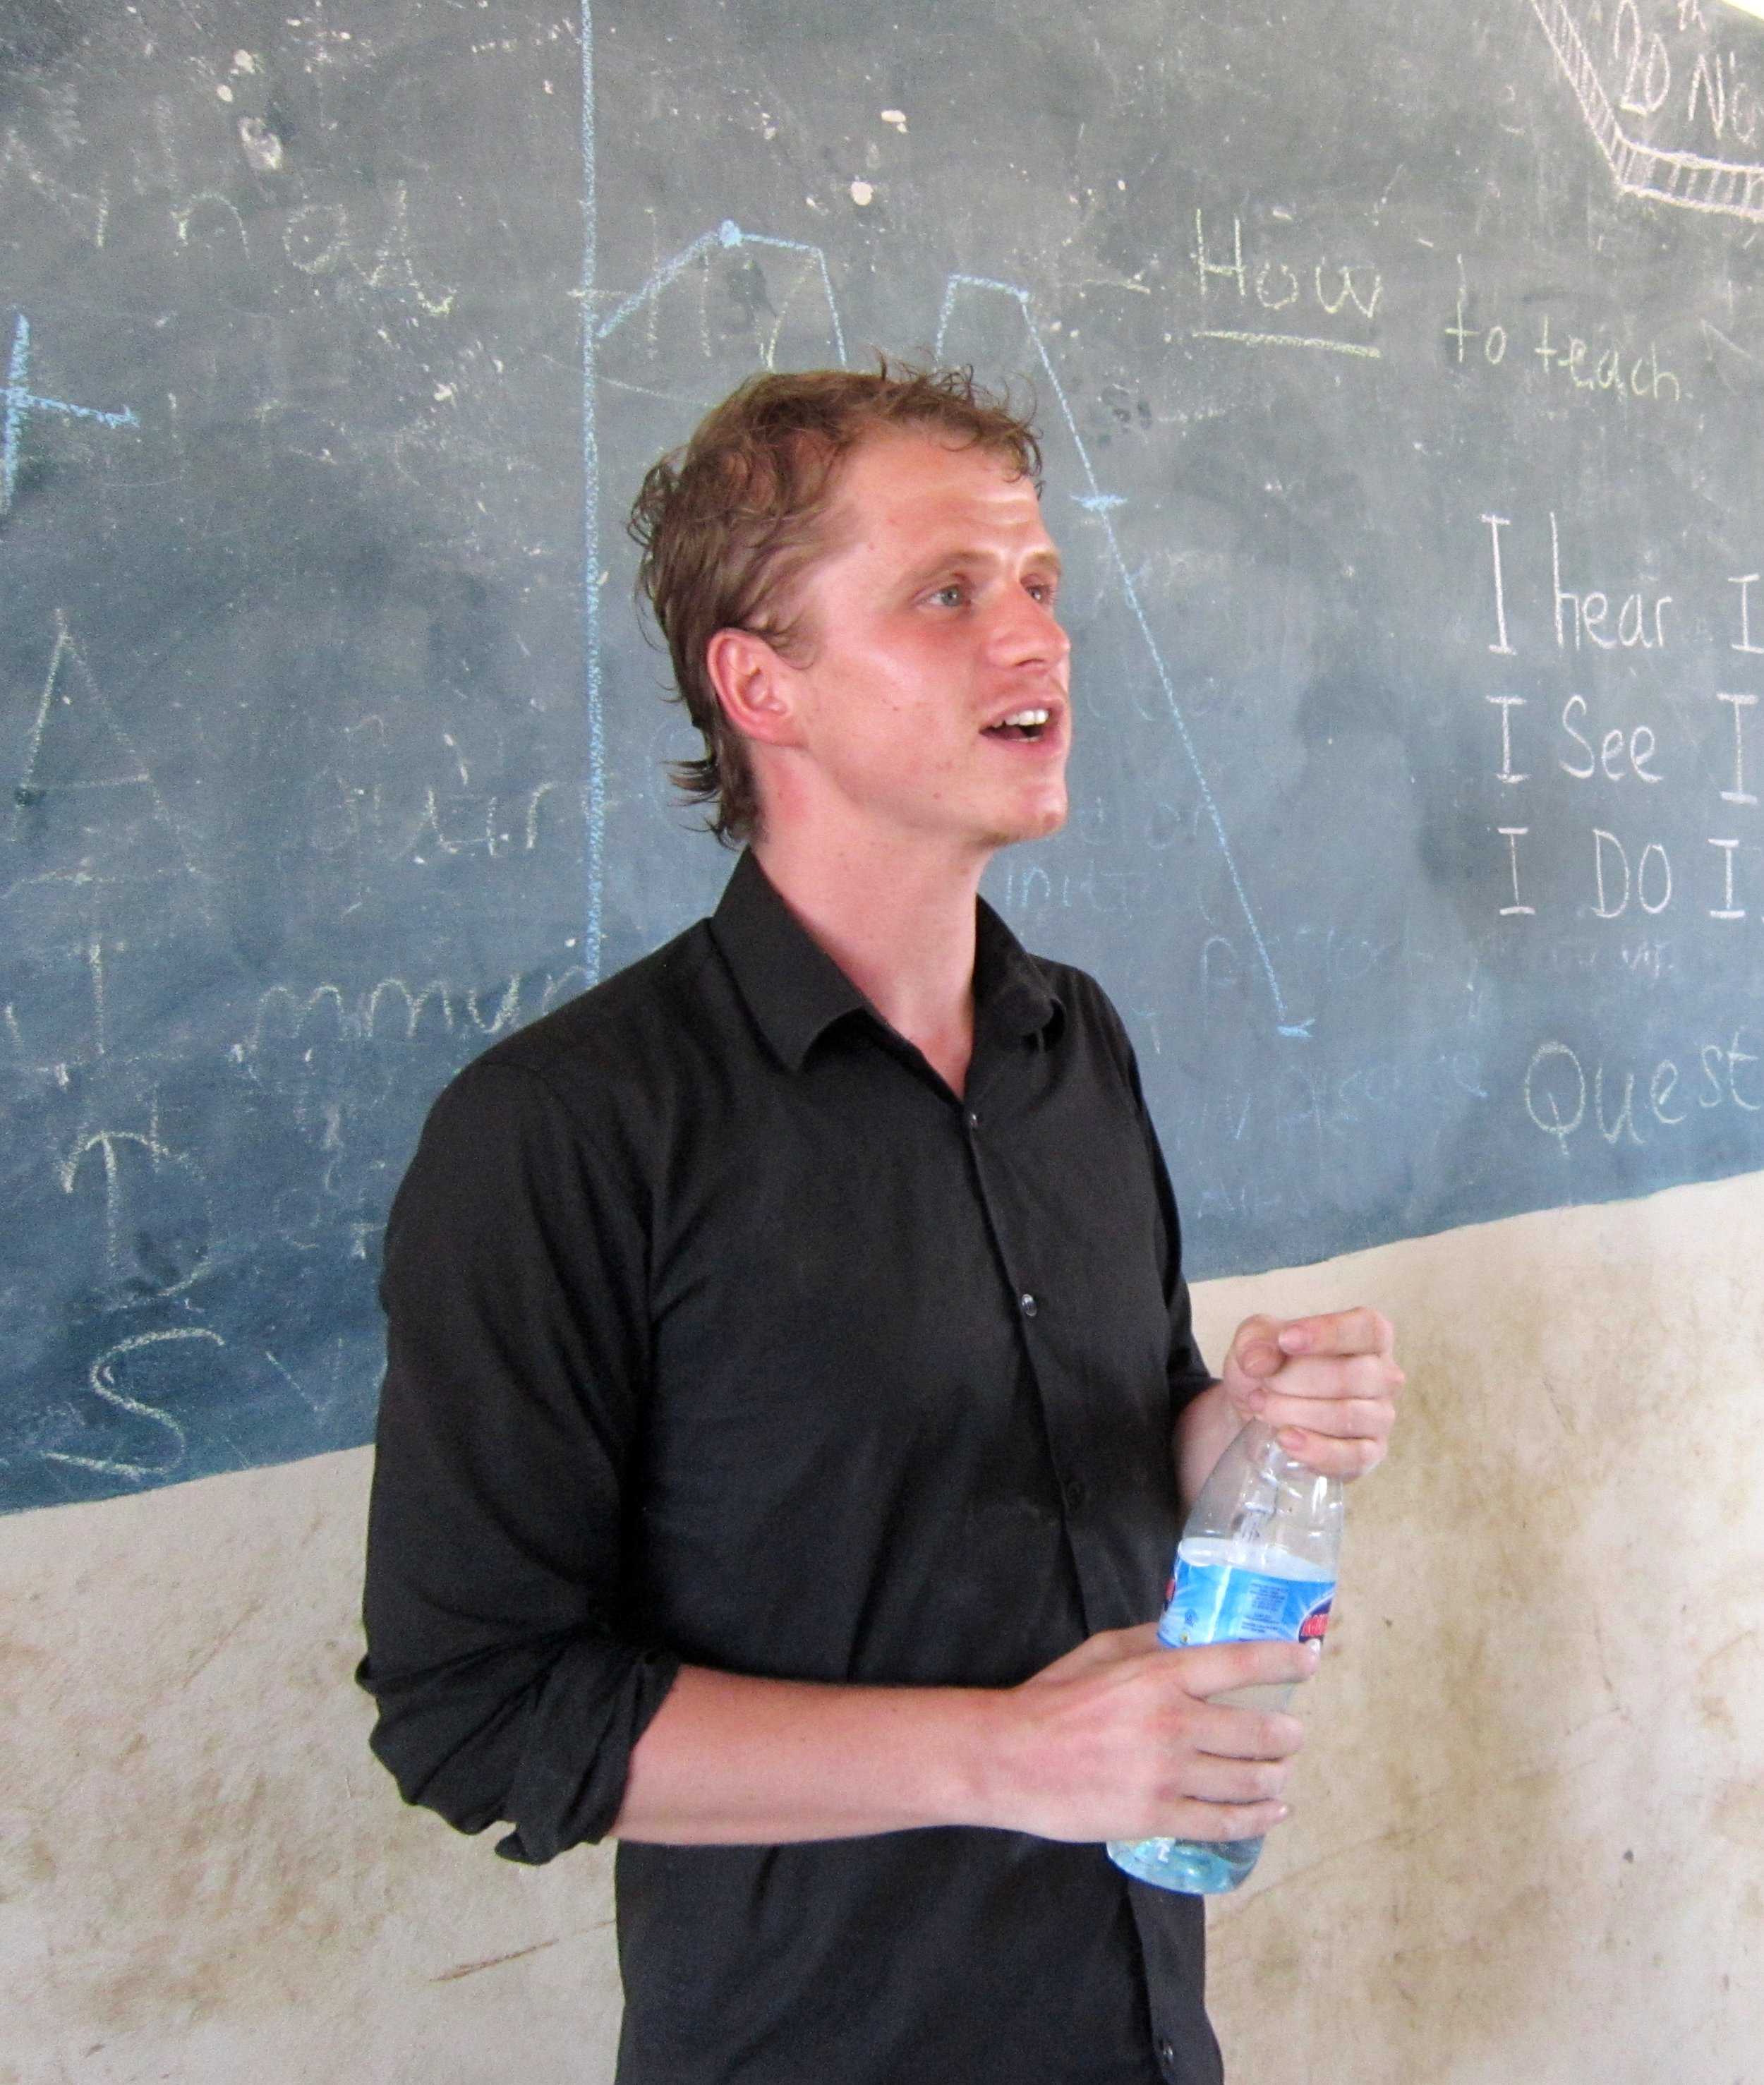 The sweaty long-haired reality of delivering teacher training in Zambia.